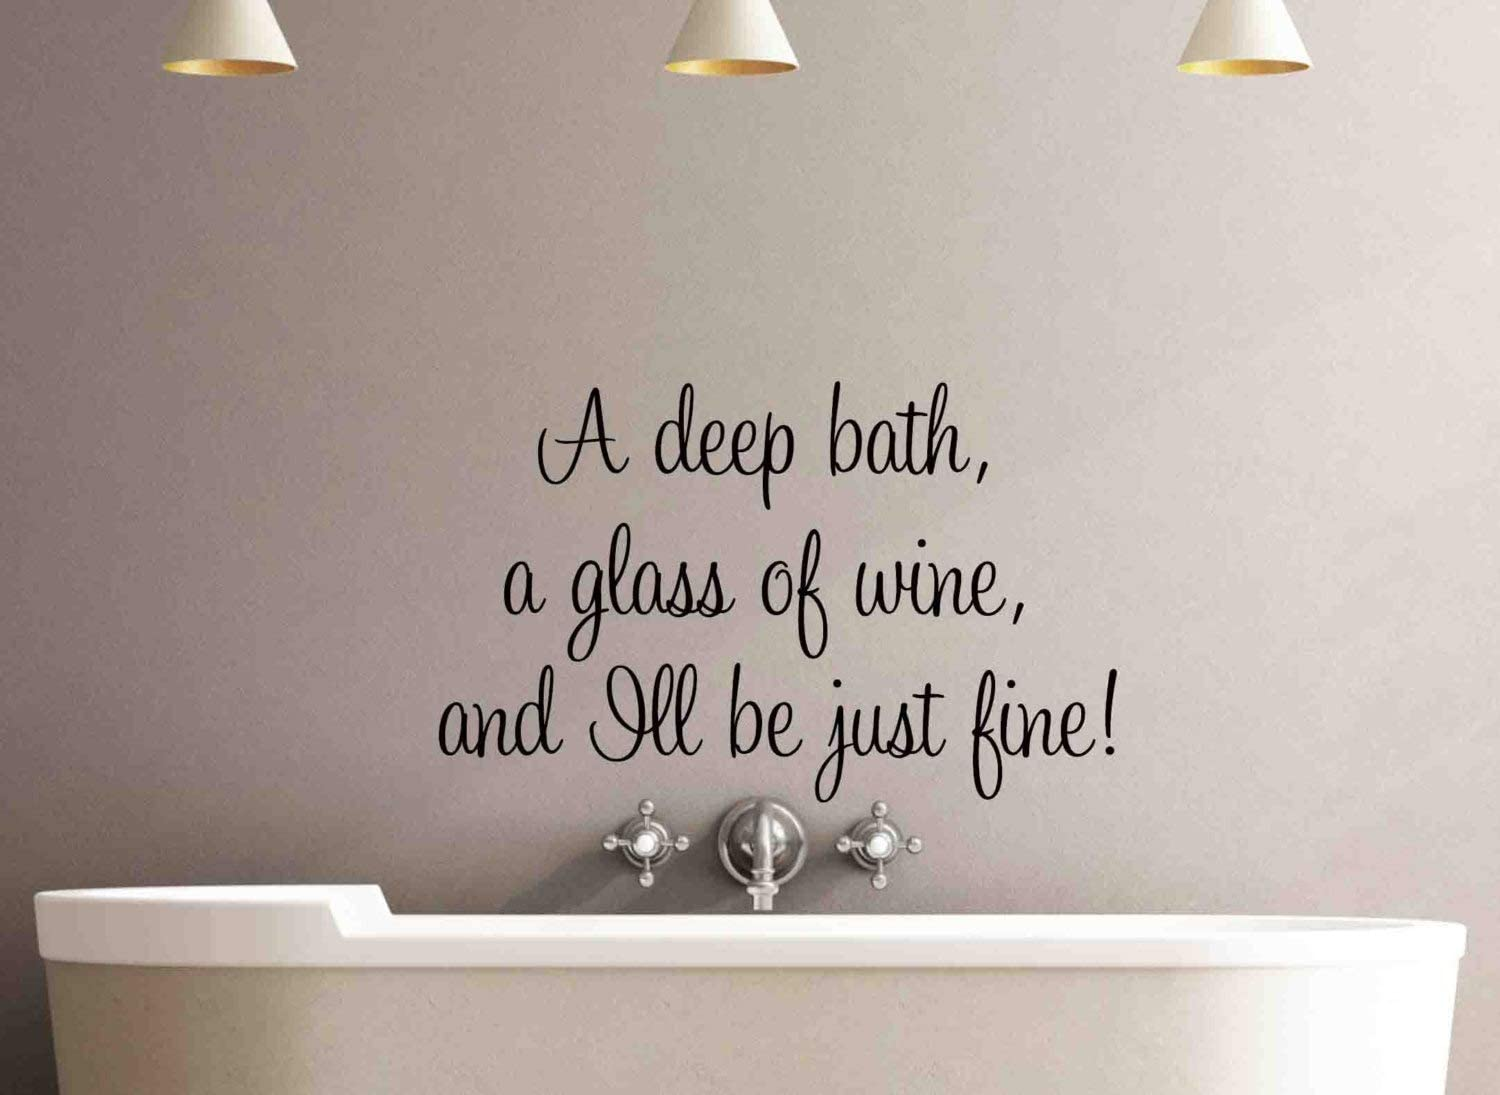 Best Design Amazing A deep Bath Wall Decal Quote-Bathroom Wall Decal-Removable Wall Decal-Wall Decor-Wall Art-Wall Decal-Bathroom Decor-Bathroom Wall Decal Made in USA!